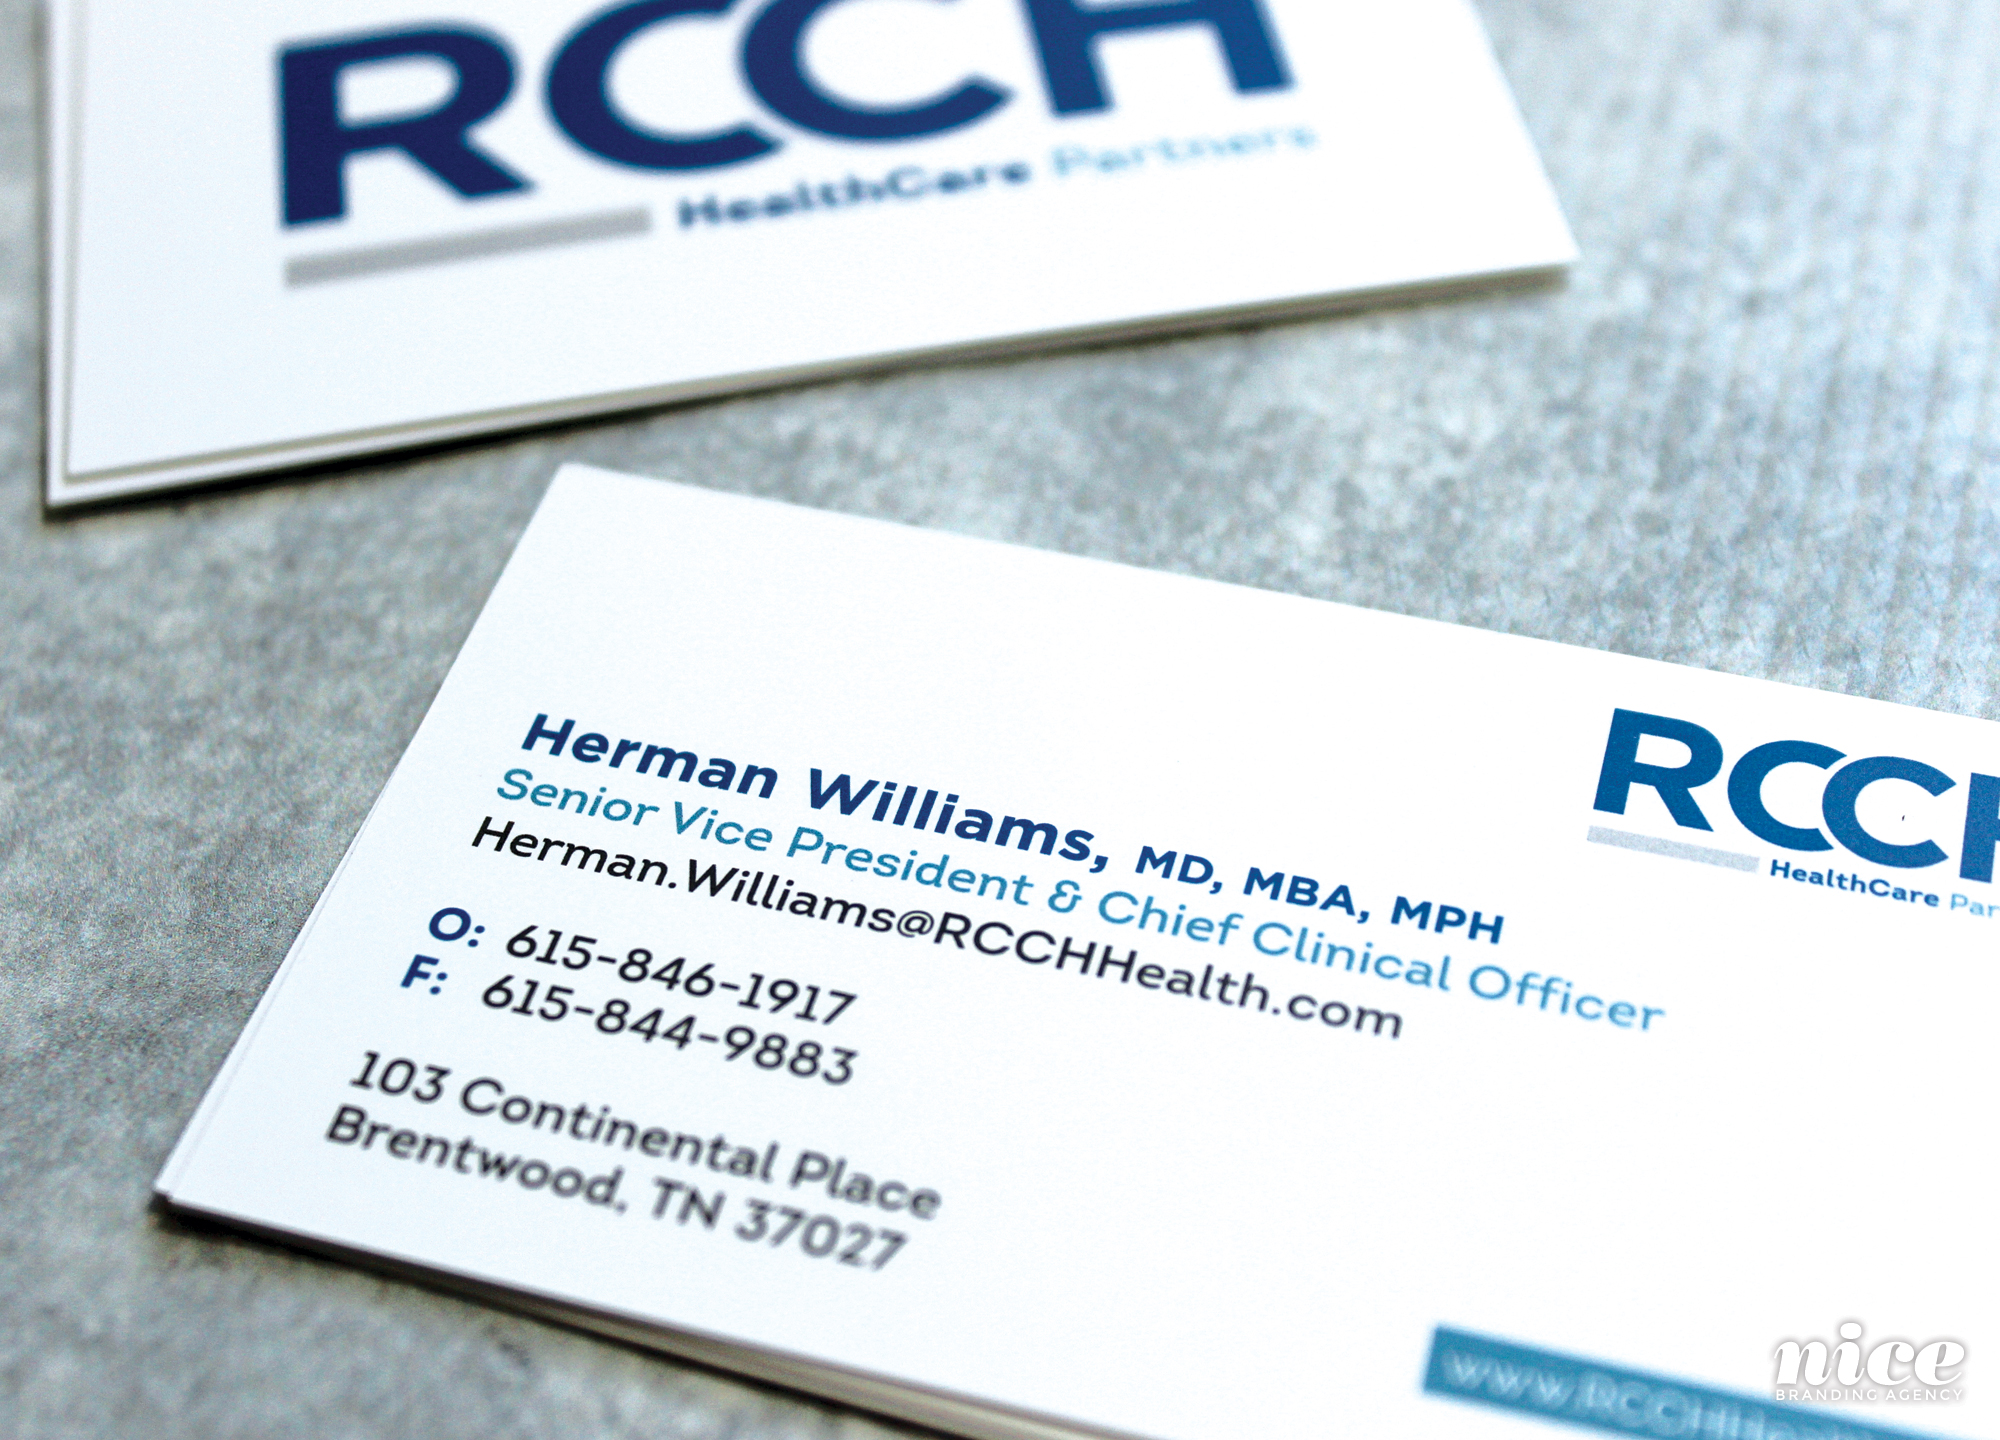 RCCH-Corporate-Business-Card-Design-1@2x | Nice Branding Agency